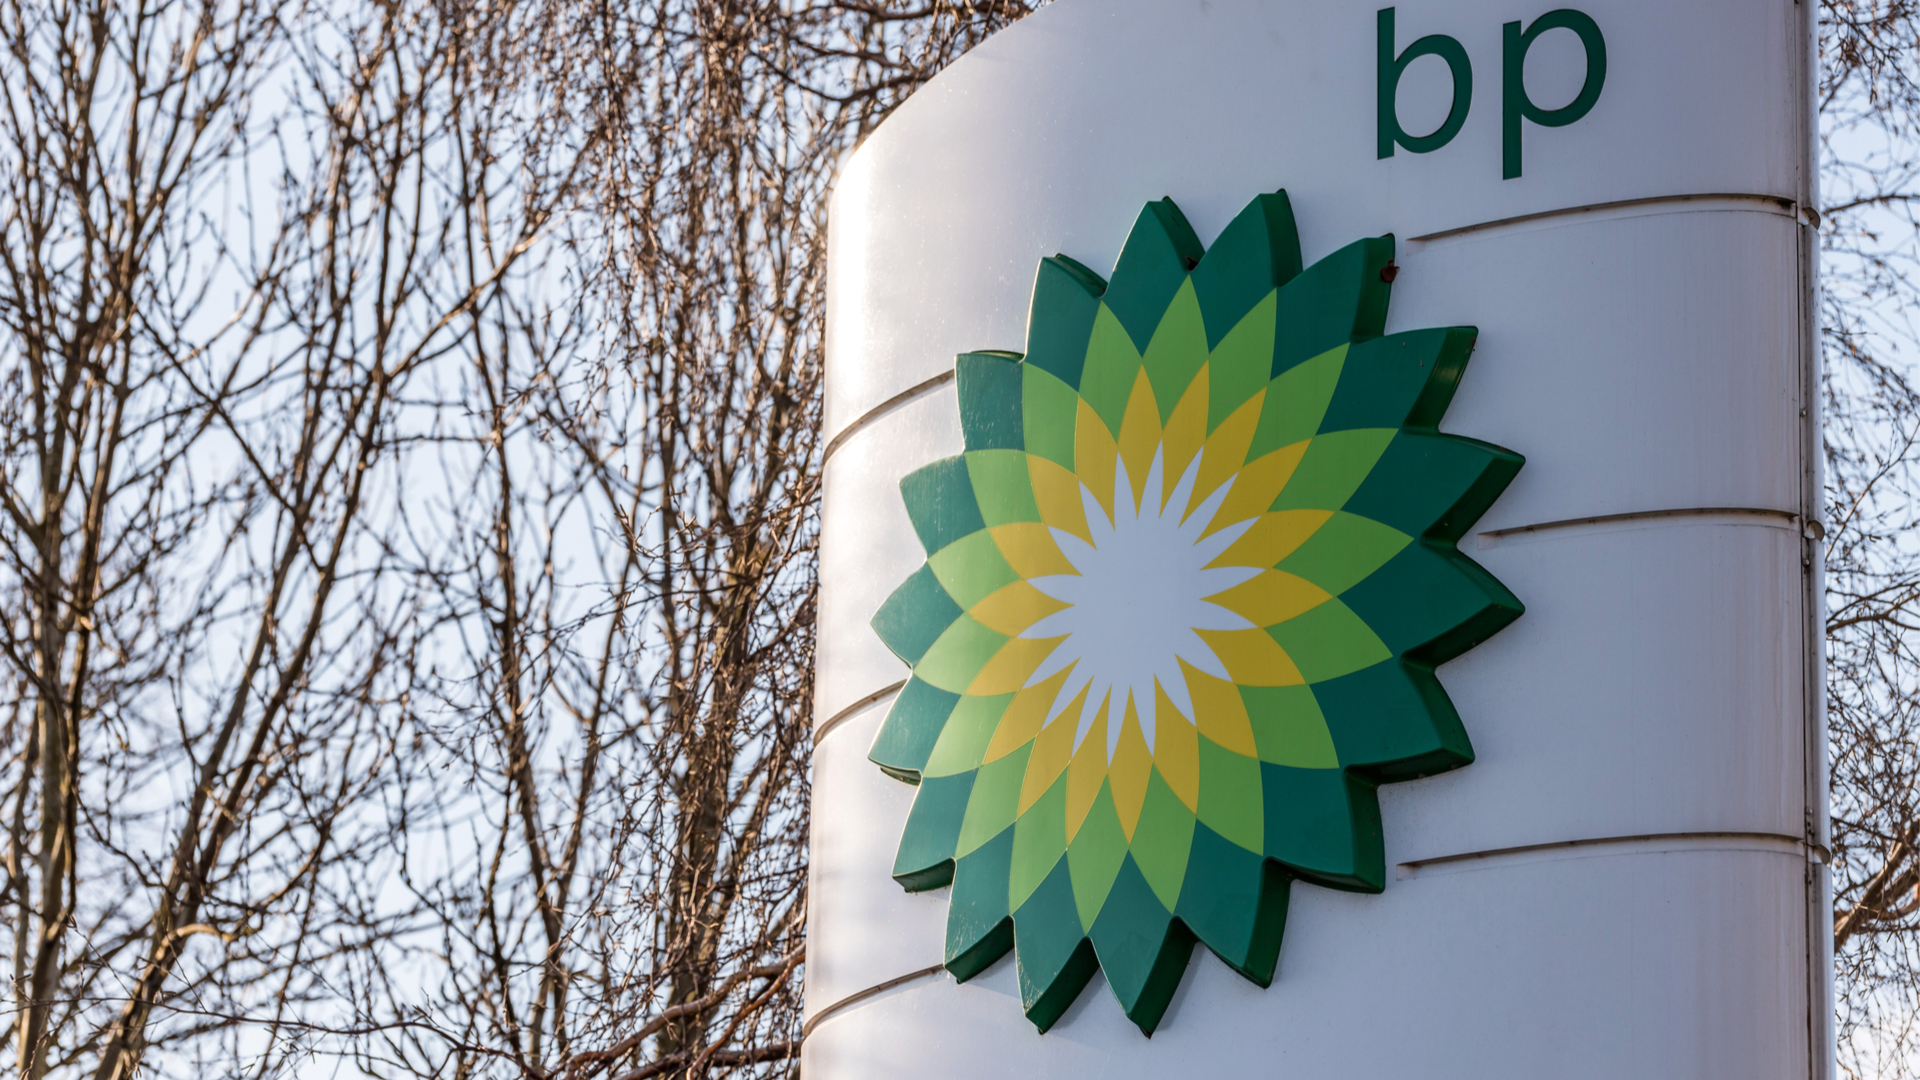 BP ends partnership with Nectar